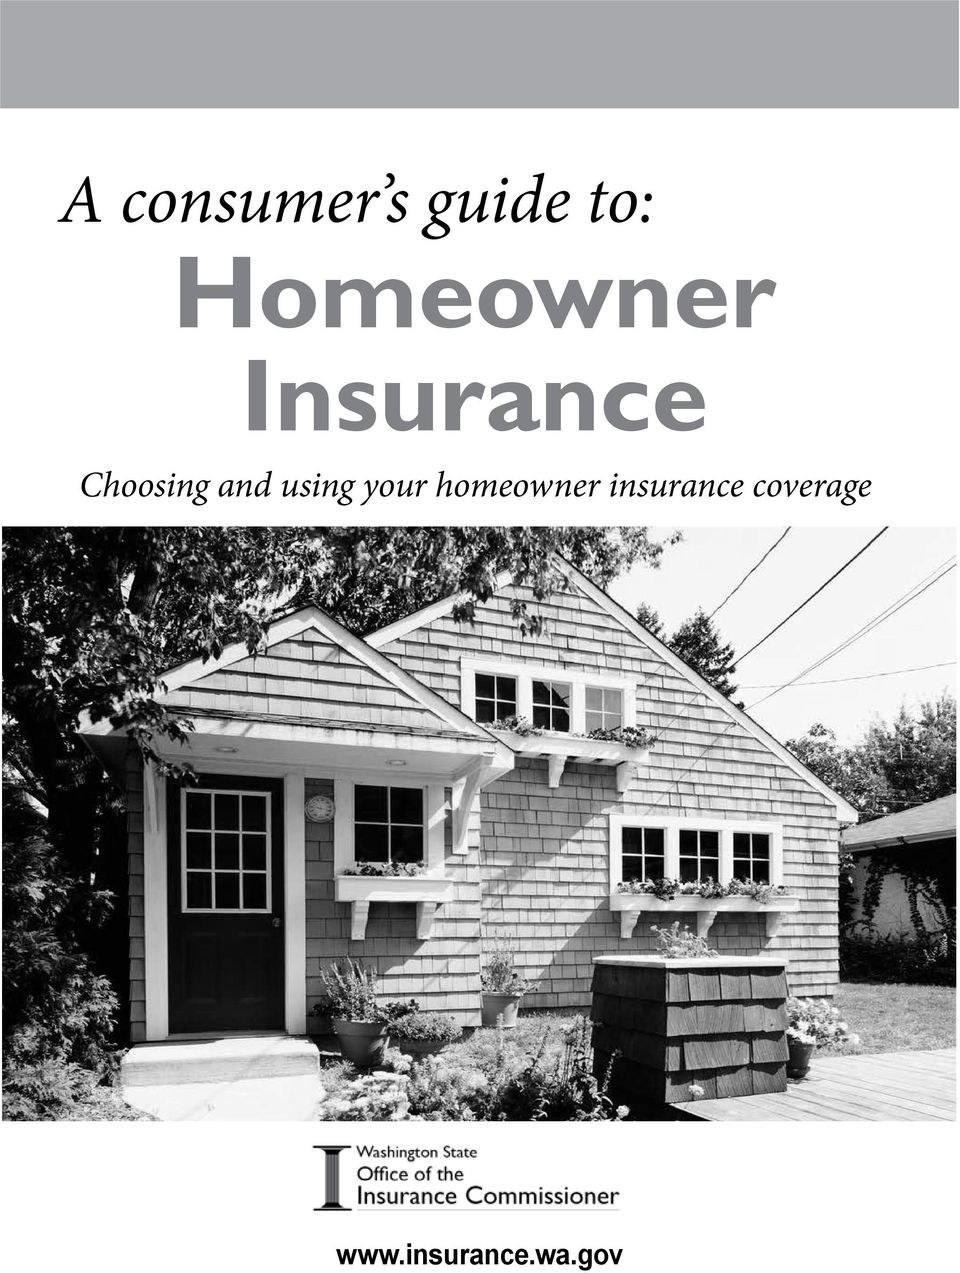 homeowner insurance coverage www.